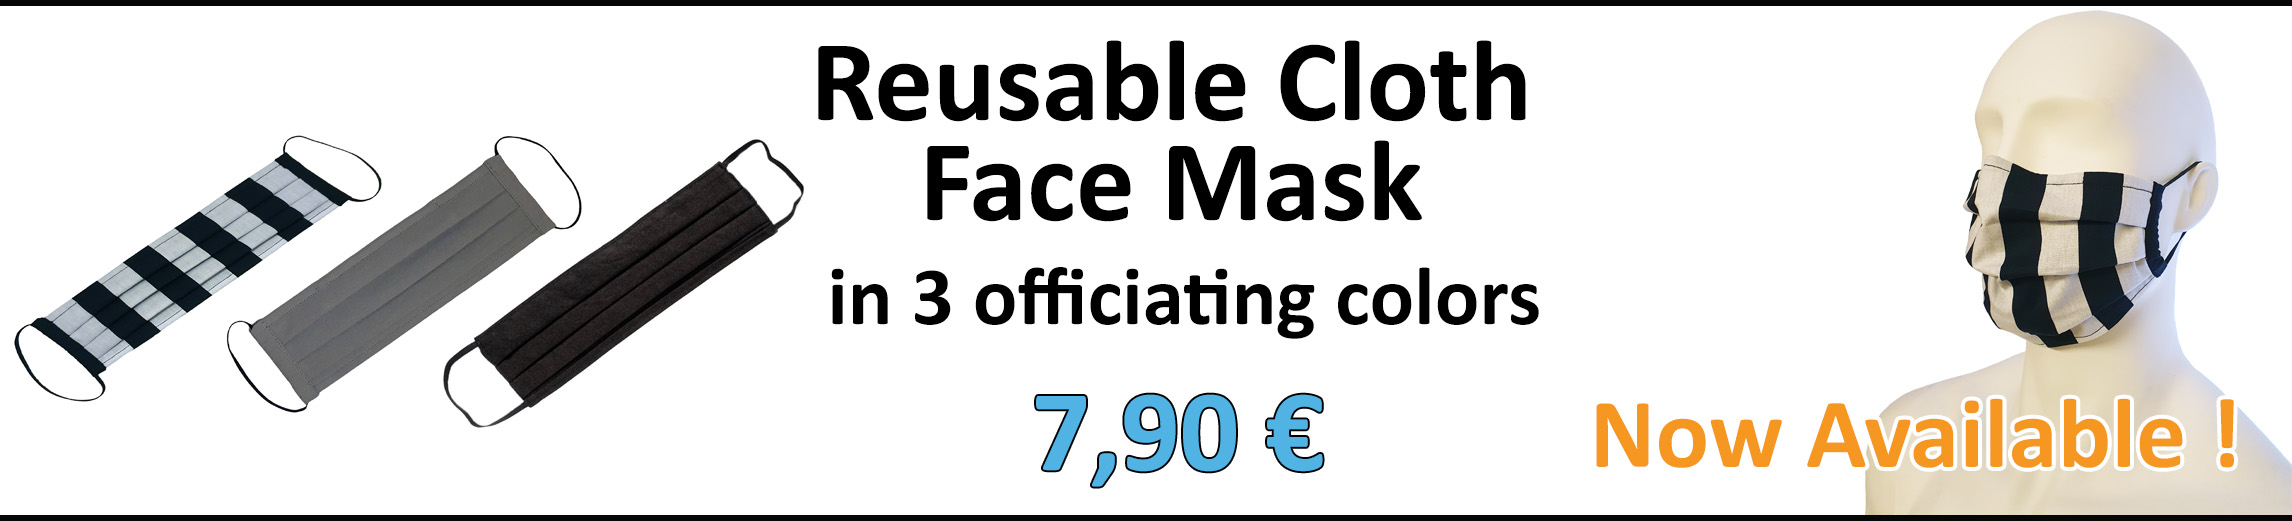 BUY A FACE MASK !